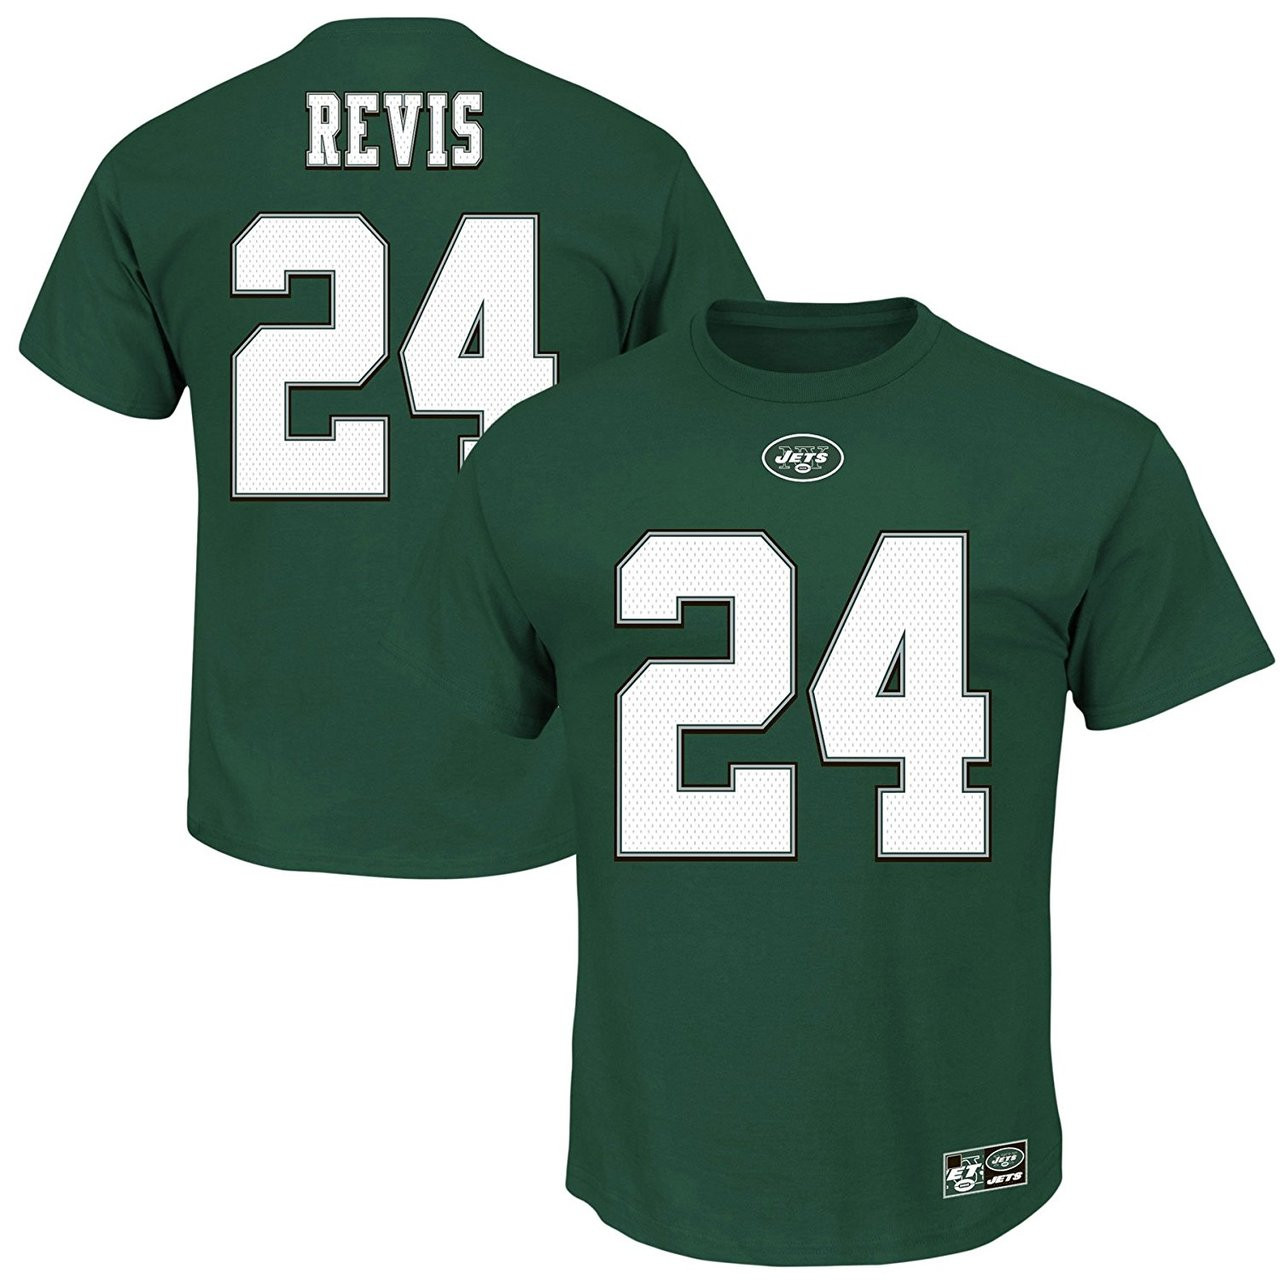 bef10973 Darrelle Revis New York Jets Green Eligible Receiver II Jersey Name and  Number T-shirt